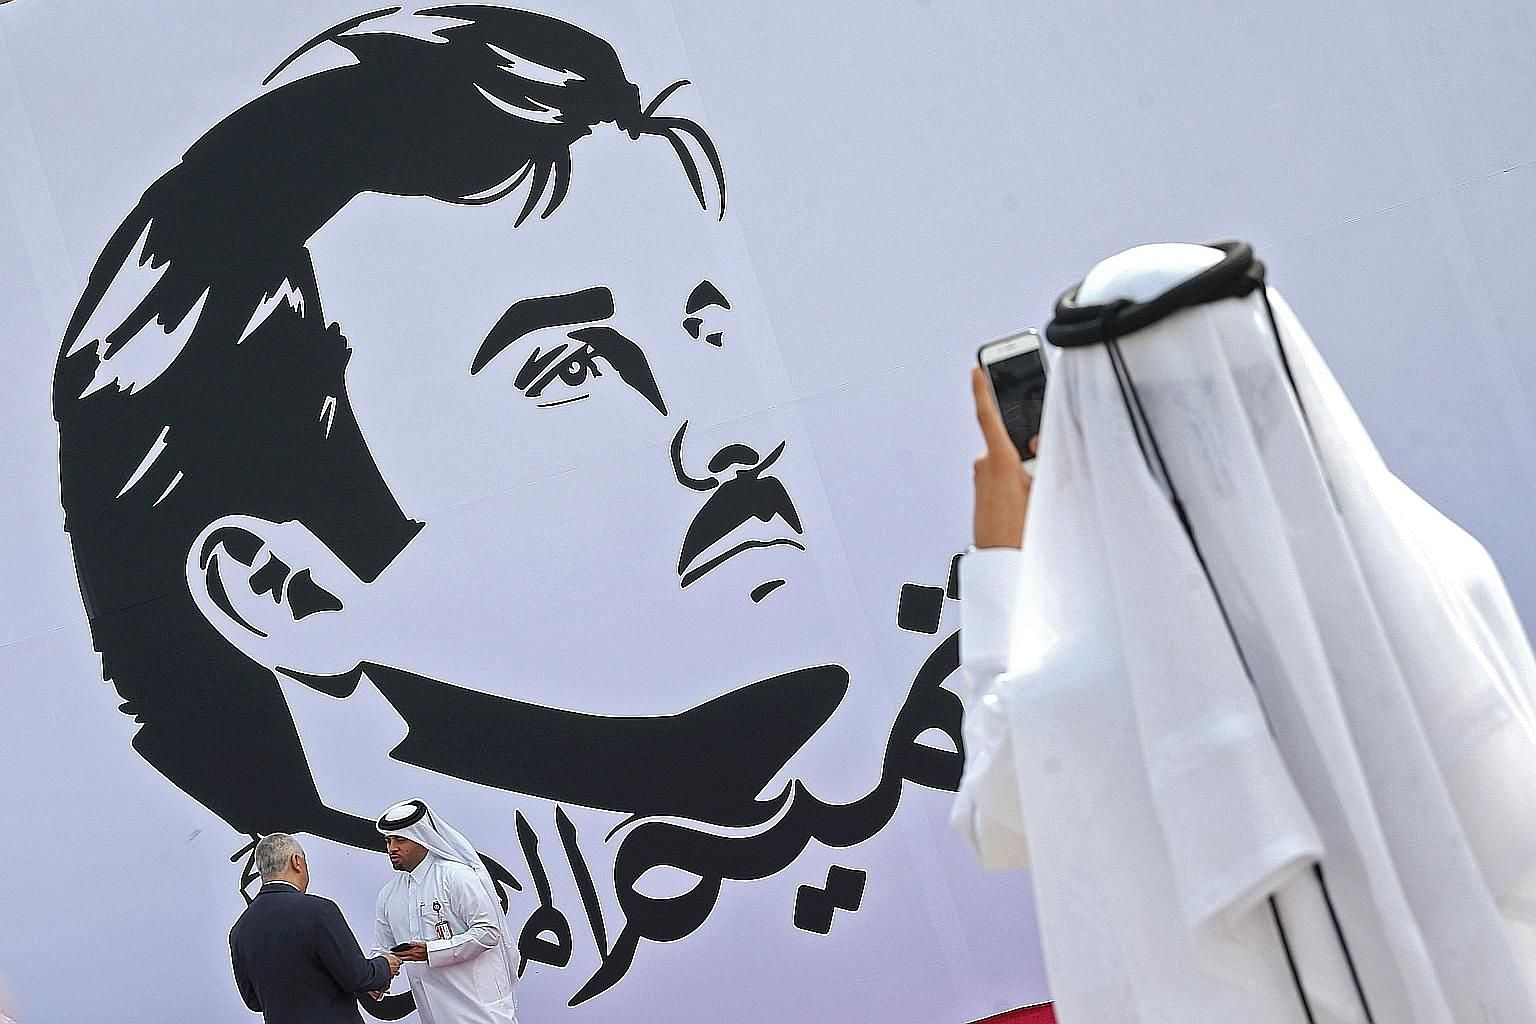 A wall in Doha with a portrait of Qatar's Emir, Sheikh Tamim bin Hamad al-Thani. His image has been appearing on social media, street posters and T-shirts.